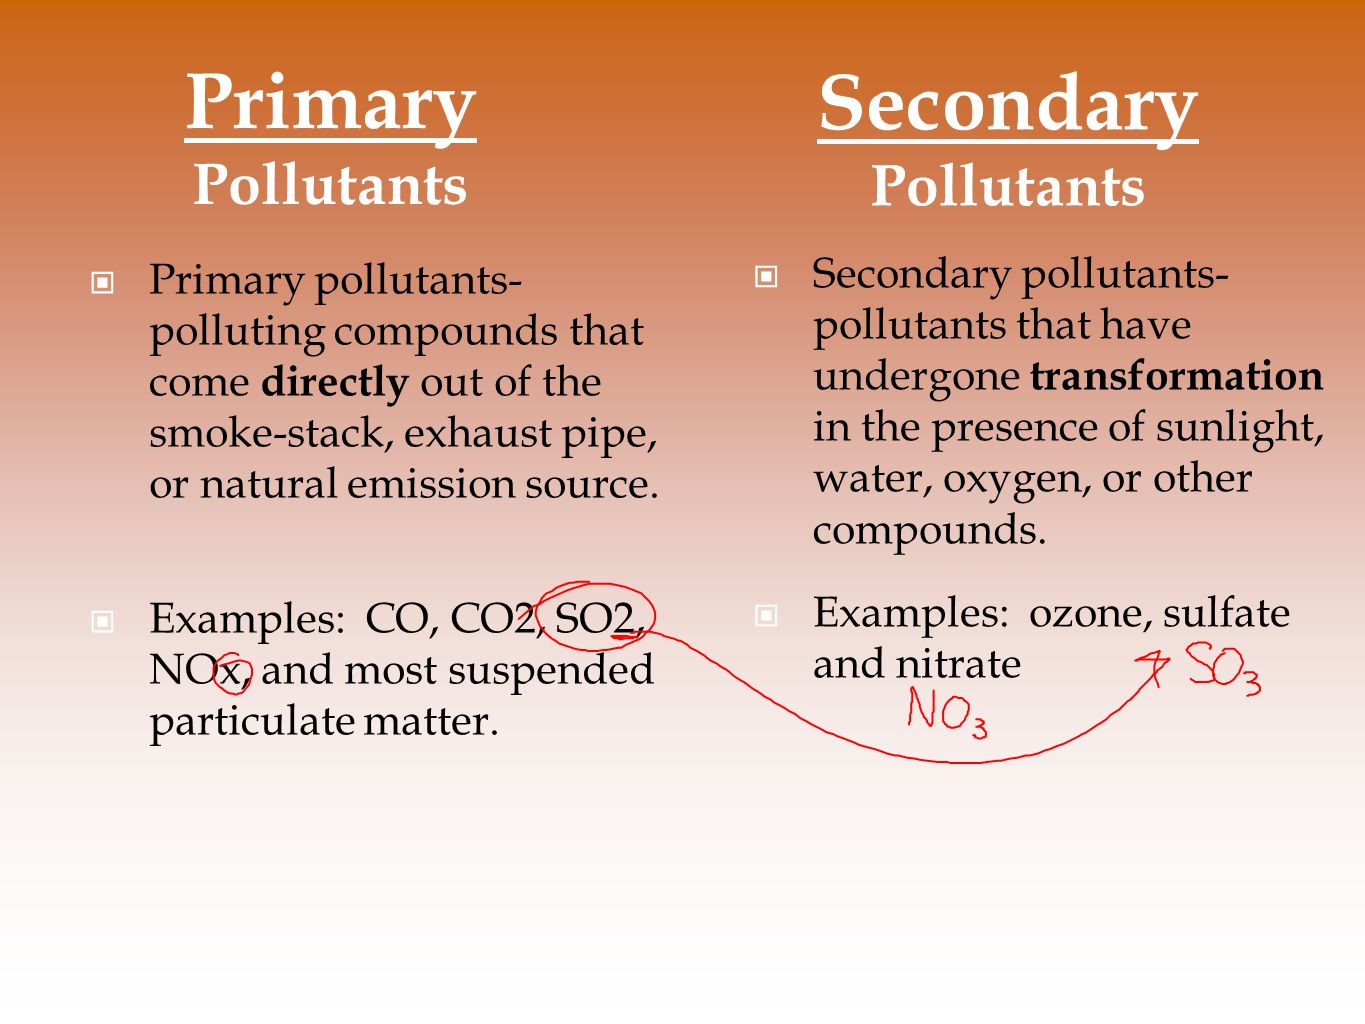 Primary Pollutants Secondary Pollutants